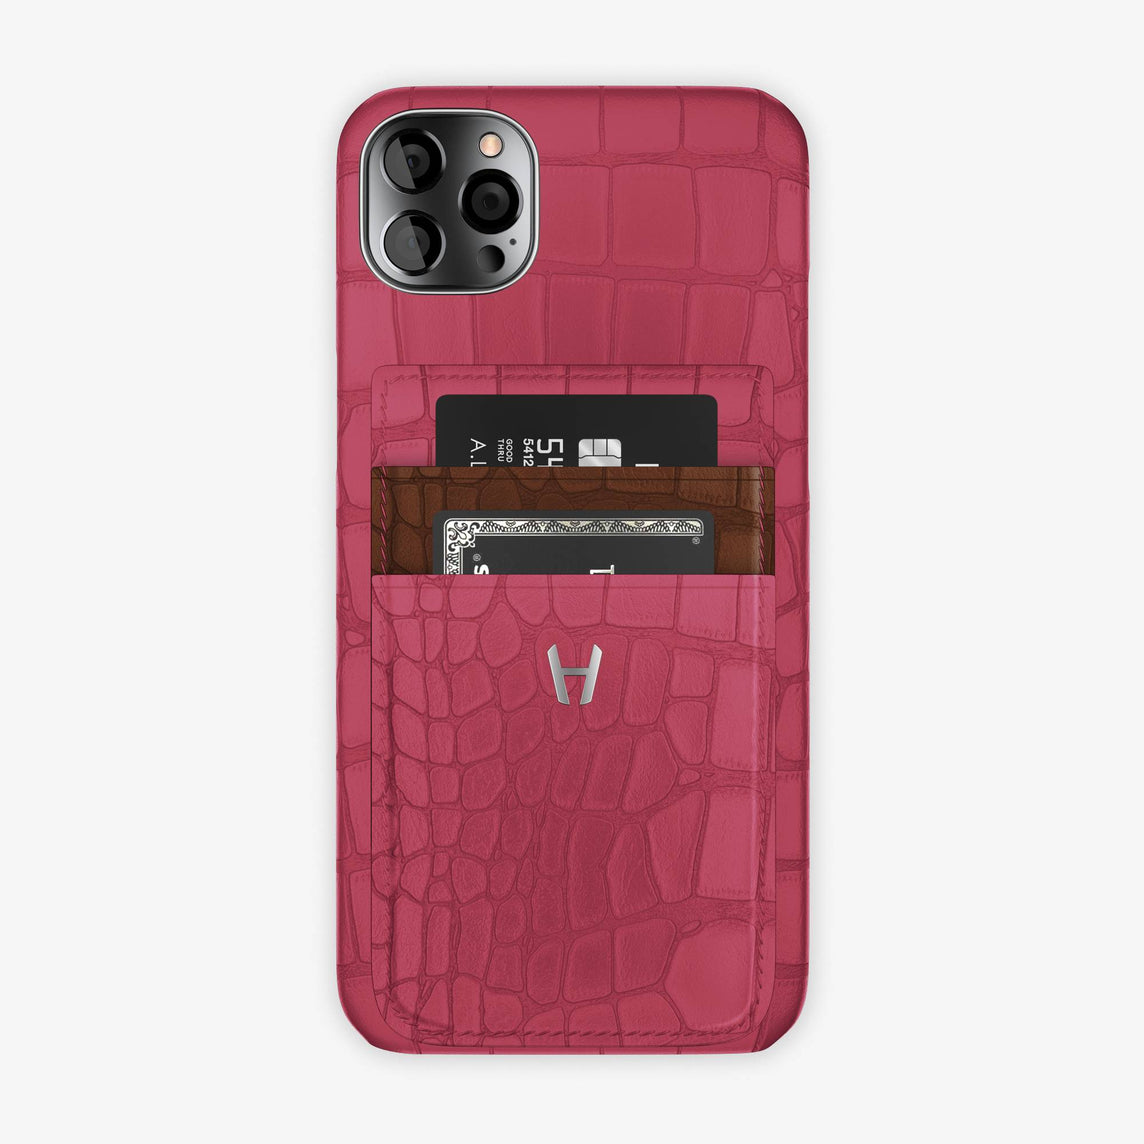 Alligator Pocket Case iPhone 12 Pro Max | Pink Girly/Brown - Stainless Steel